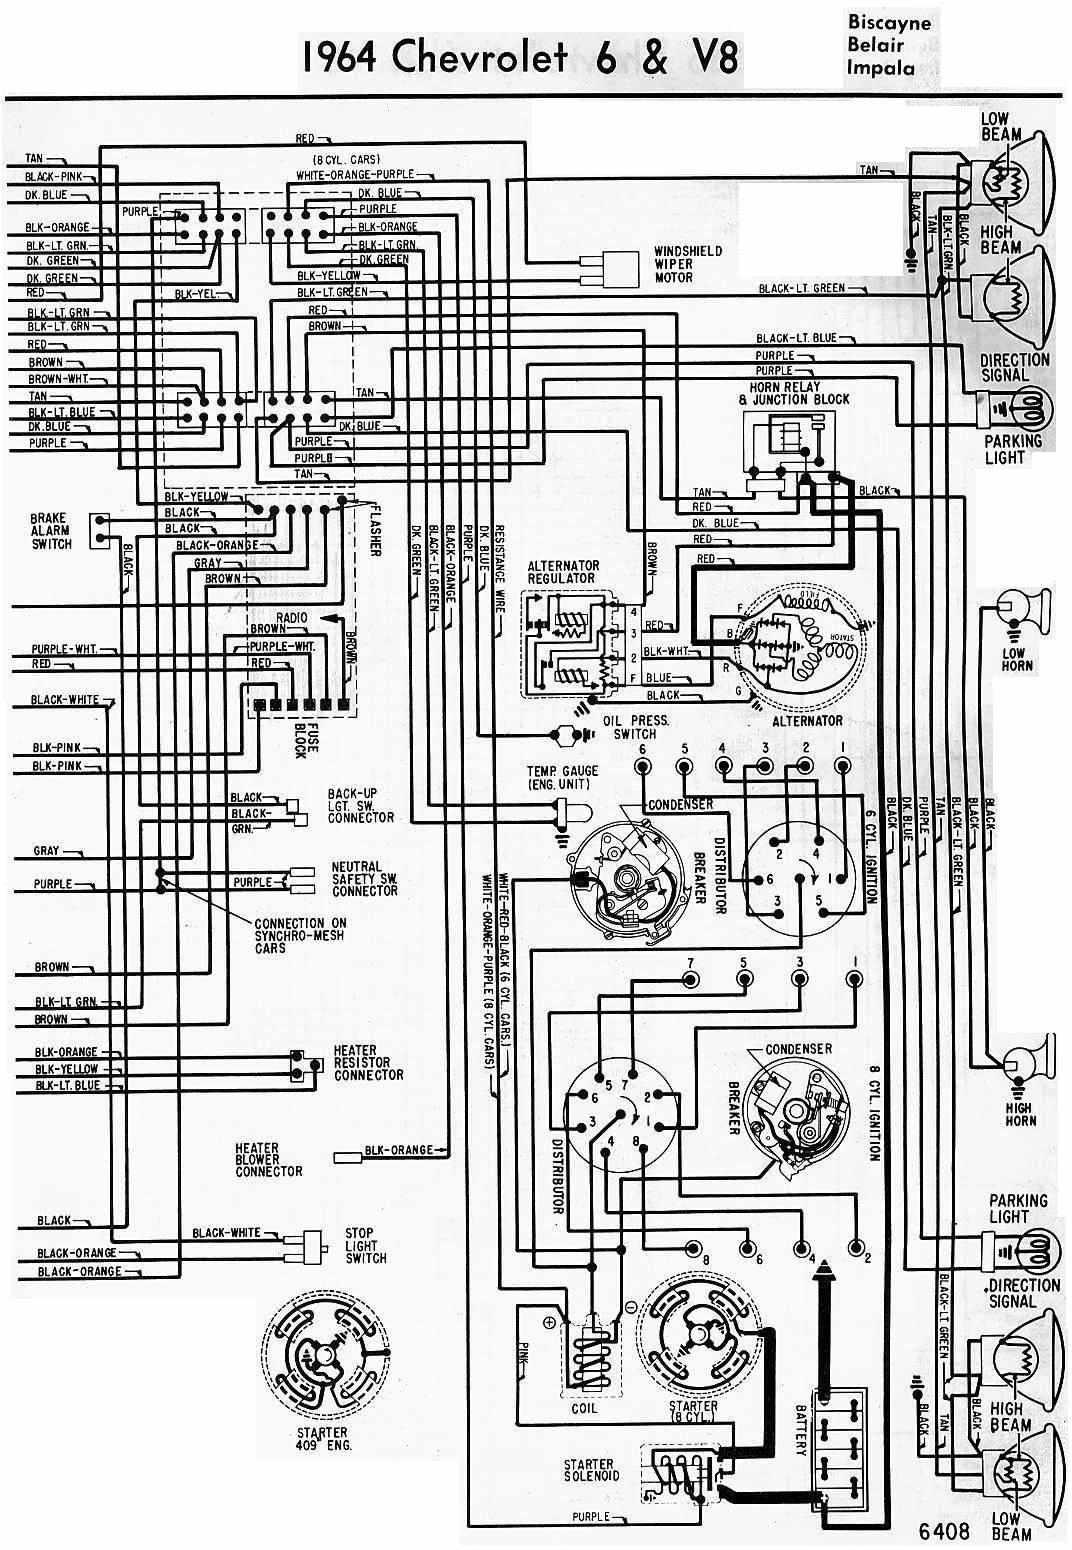 Electrical+Wiring+Diagram+Of+1964+Chevrolet+6+And+V8 1964 bel air wire diagram colors incorrect chevytalk free 1963 corvair wiring diagram at bakdesigns.co